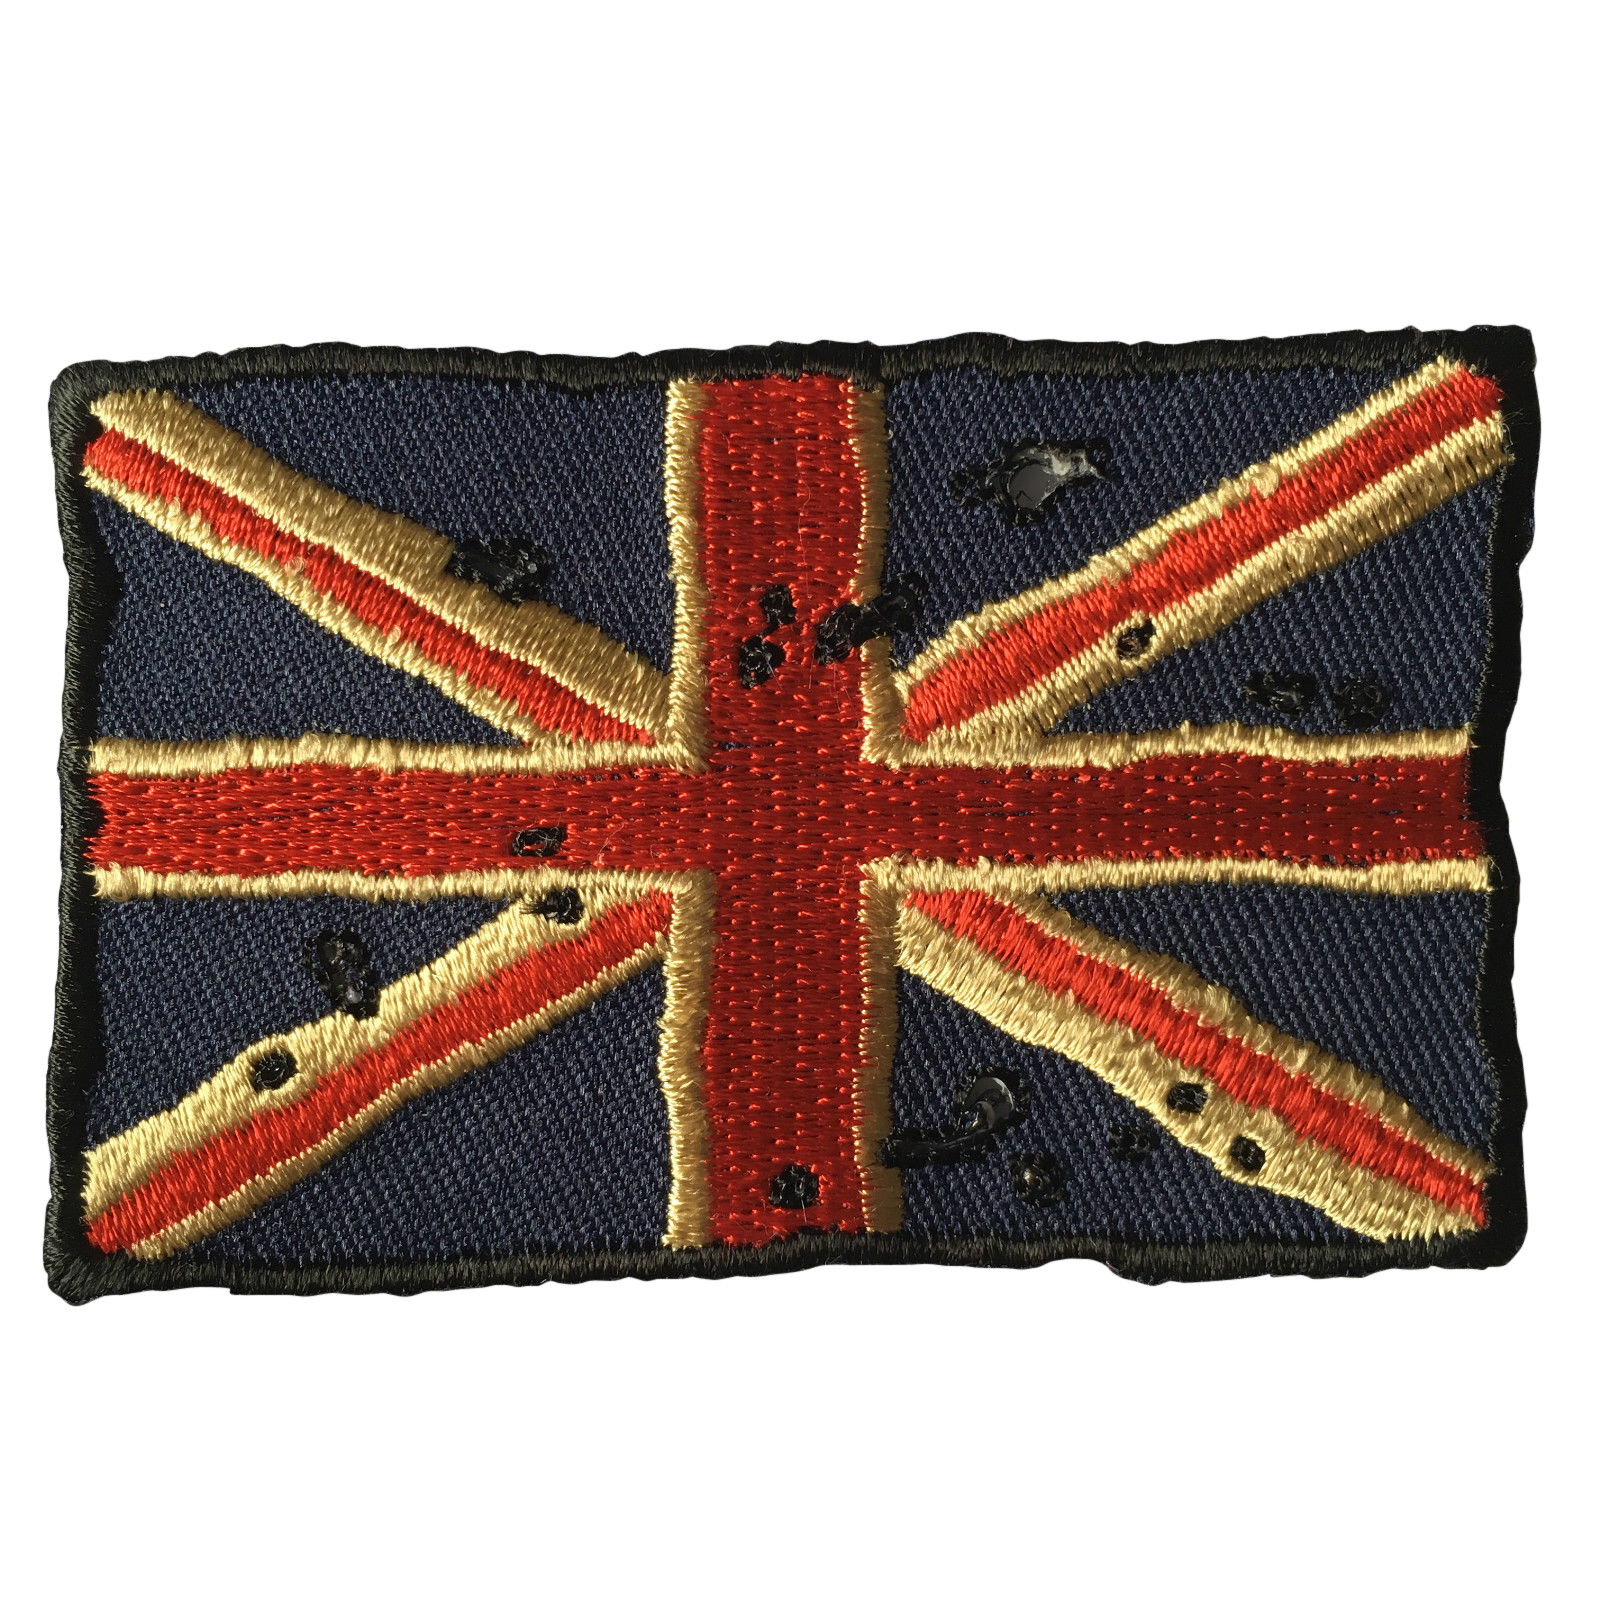 Union Jack British Flag Embroidered Patch for Embroidery Patches Badge Iron Sew